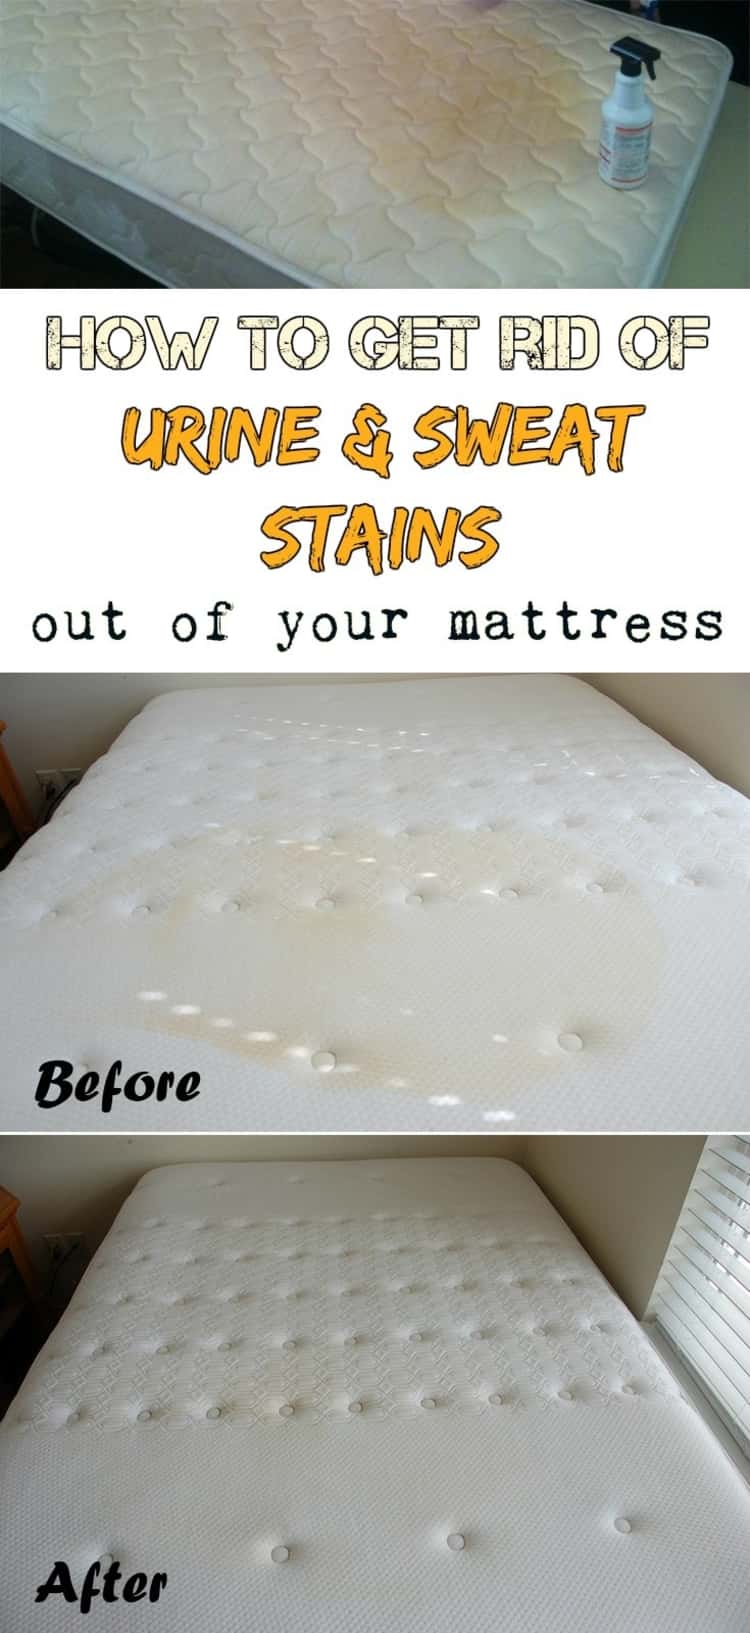 stain removal - before & after photo collage of HOW TO GET RID OF URINE & SWEAT STAINS out of your mattress